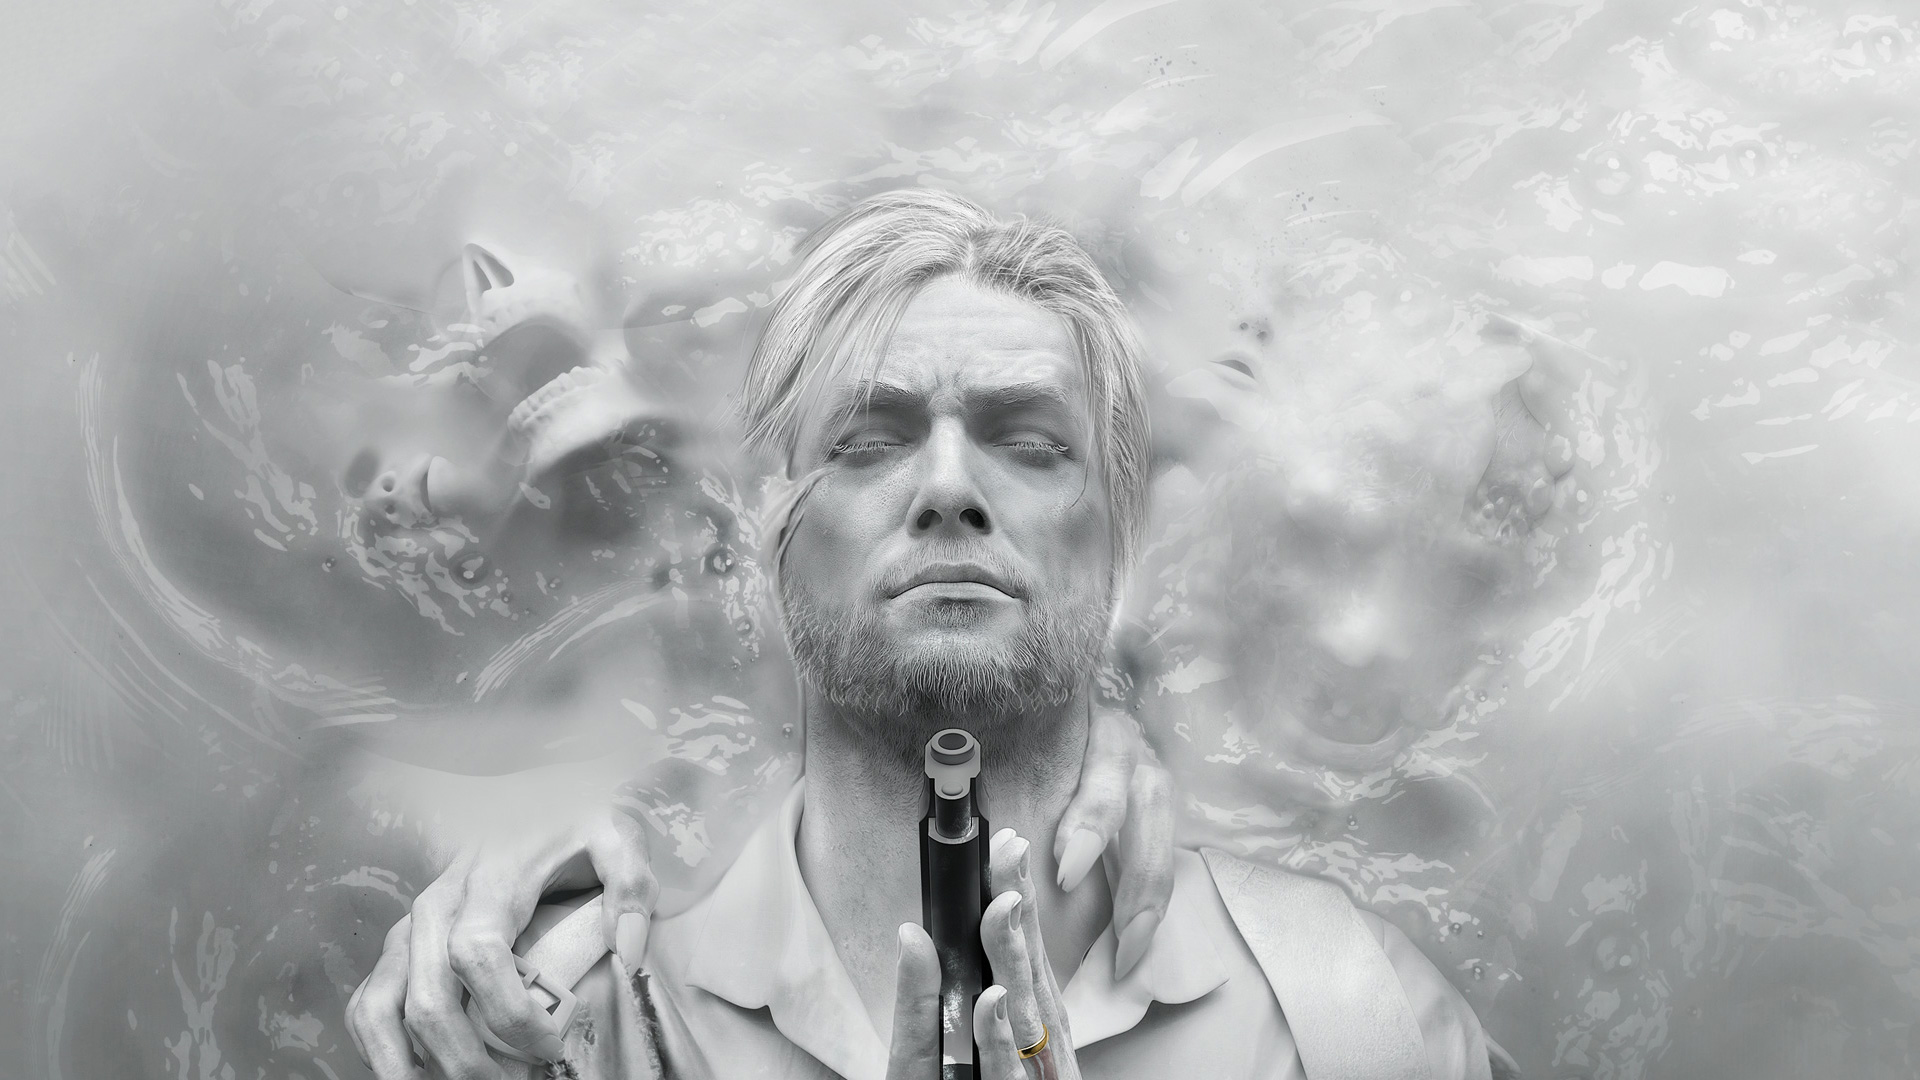 The Evil Within Wallpapers: The Evil Within 2 Wallpapers (109 Wallpapers)